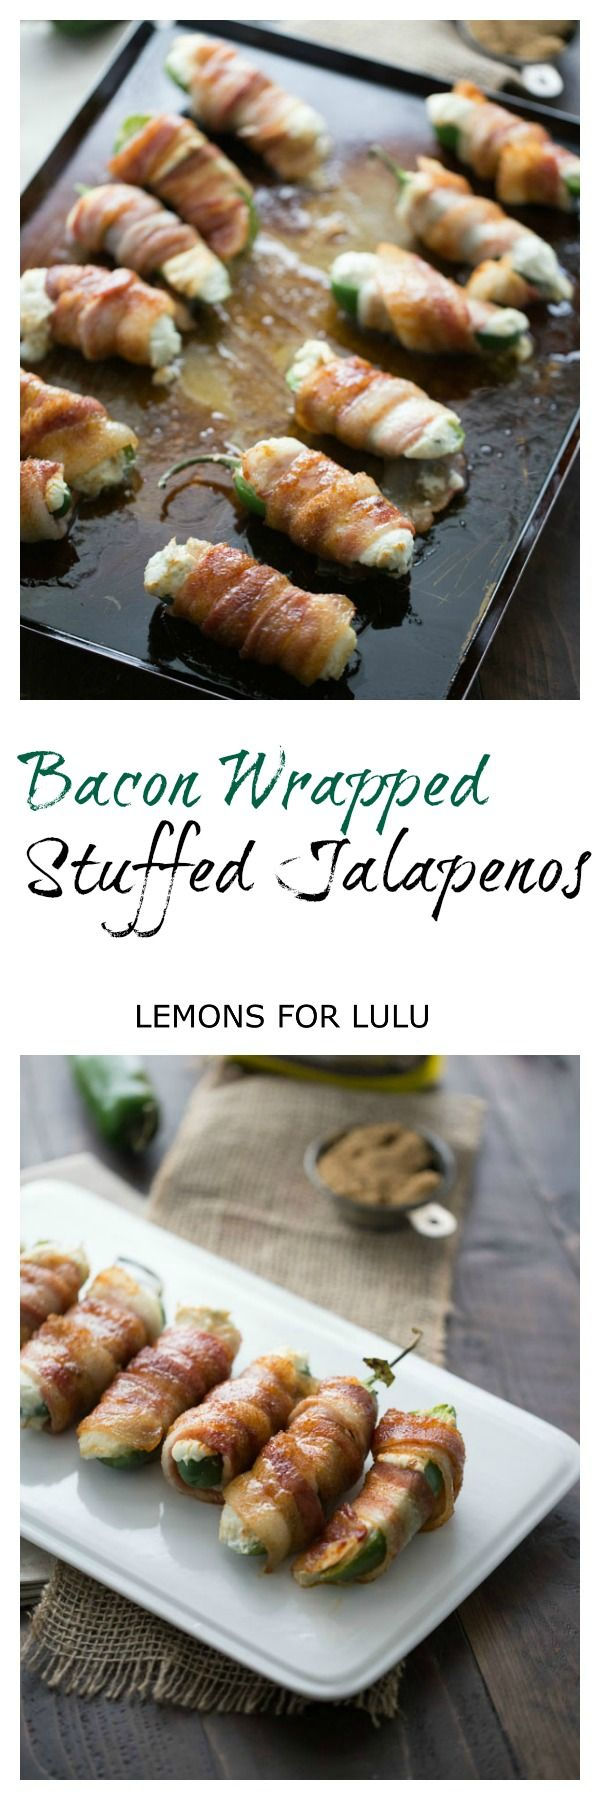 Blue cheese and cream cheese melt together perfectly in these stuffed jalapenos.  Sweet, smokey bacon wraps around each pepper for the ultimate finger food! #SplendaSweeties #SweetSwap